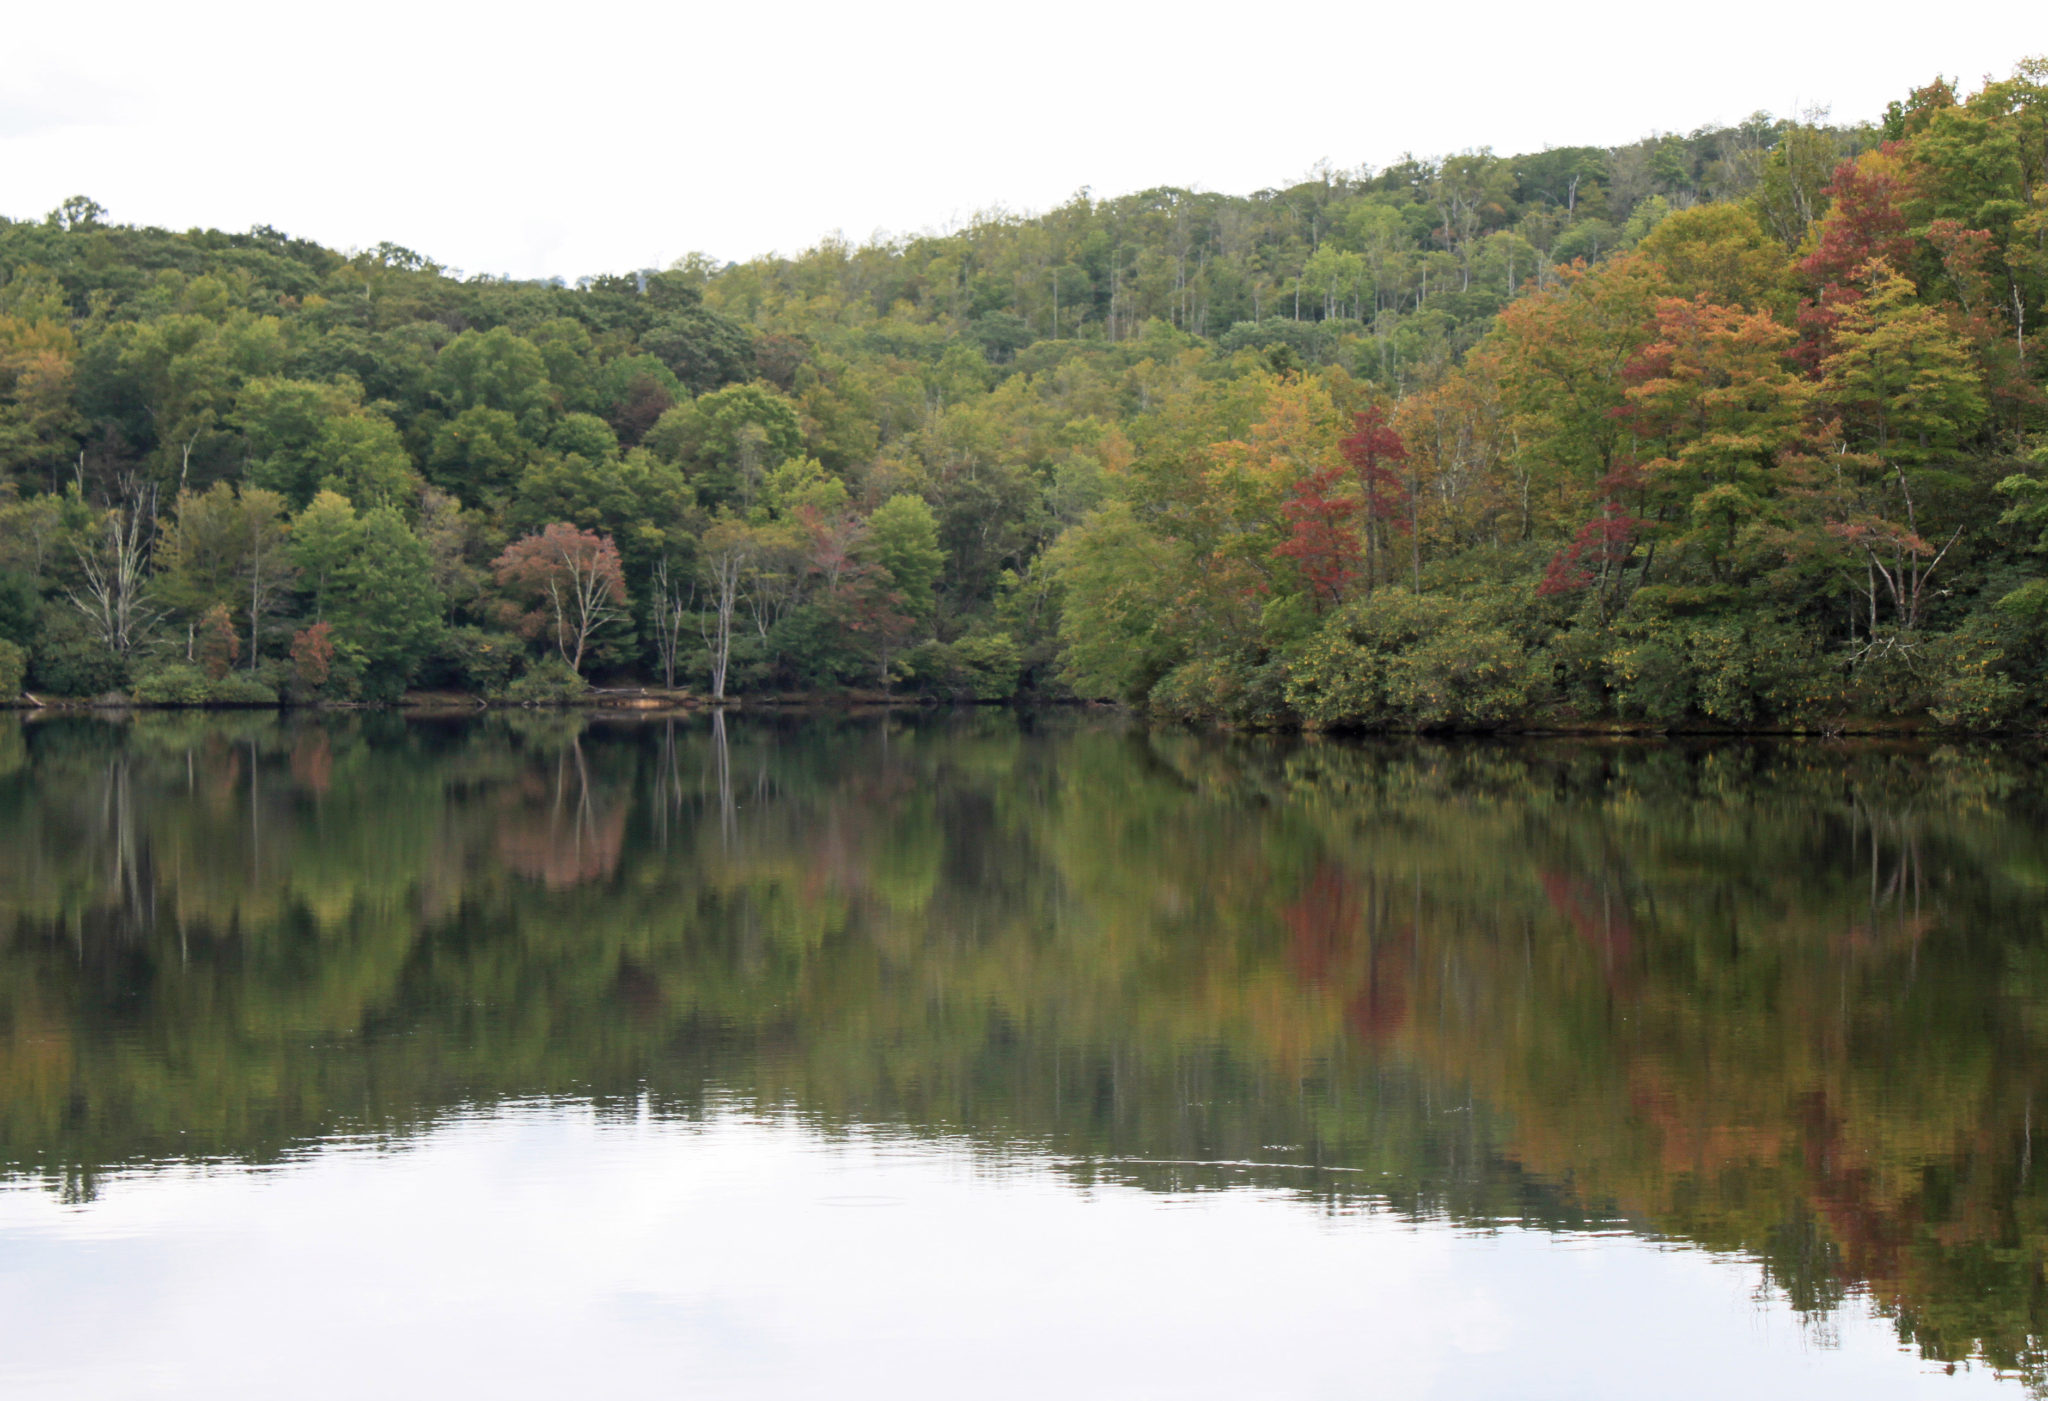 early fall foliage at Price Lake